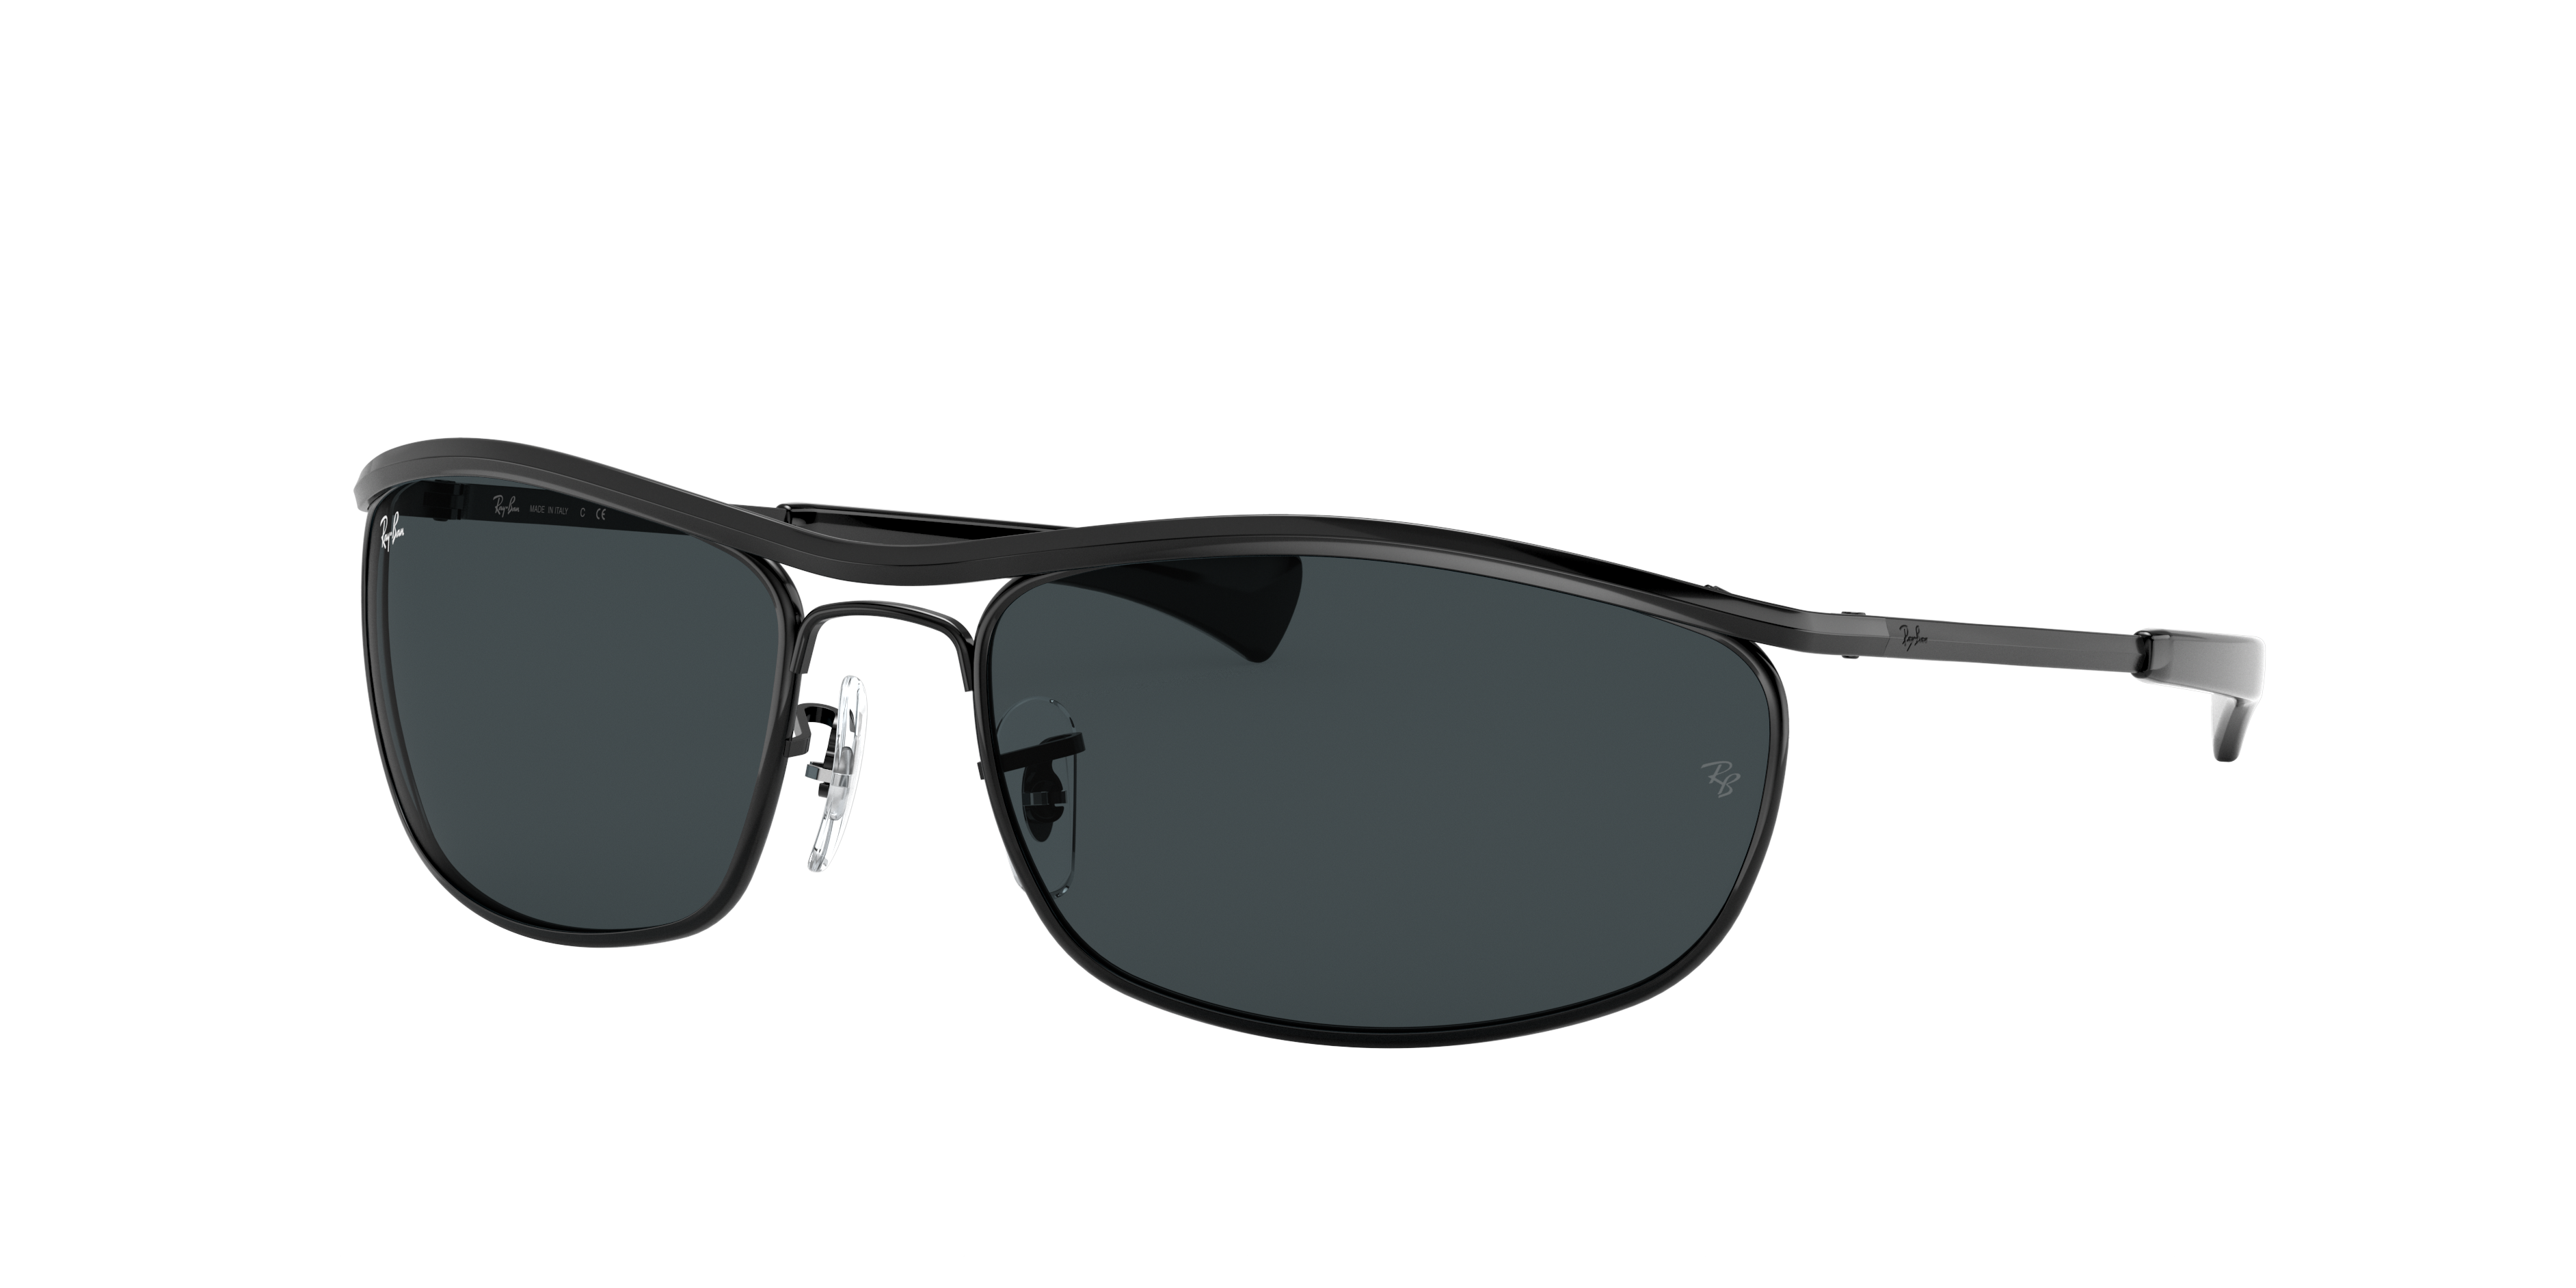 Ray-Ban Olympian I Deluxe Black, Blue Lenses - RB3119M